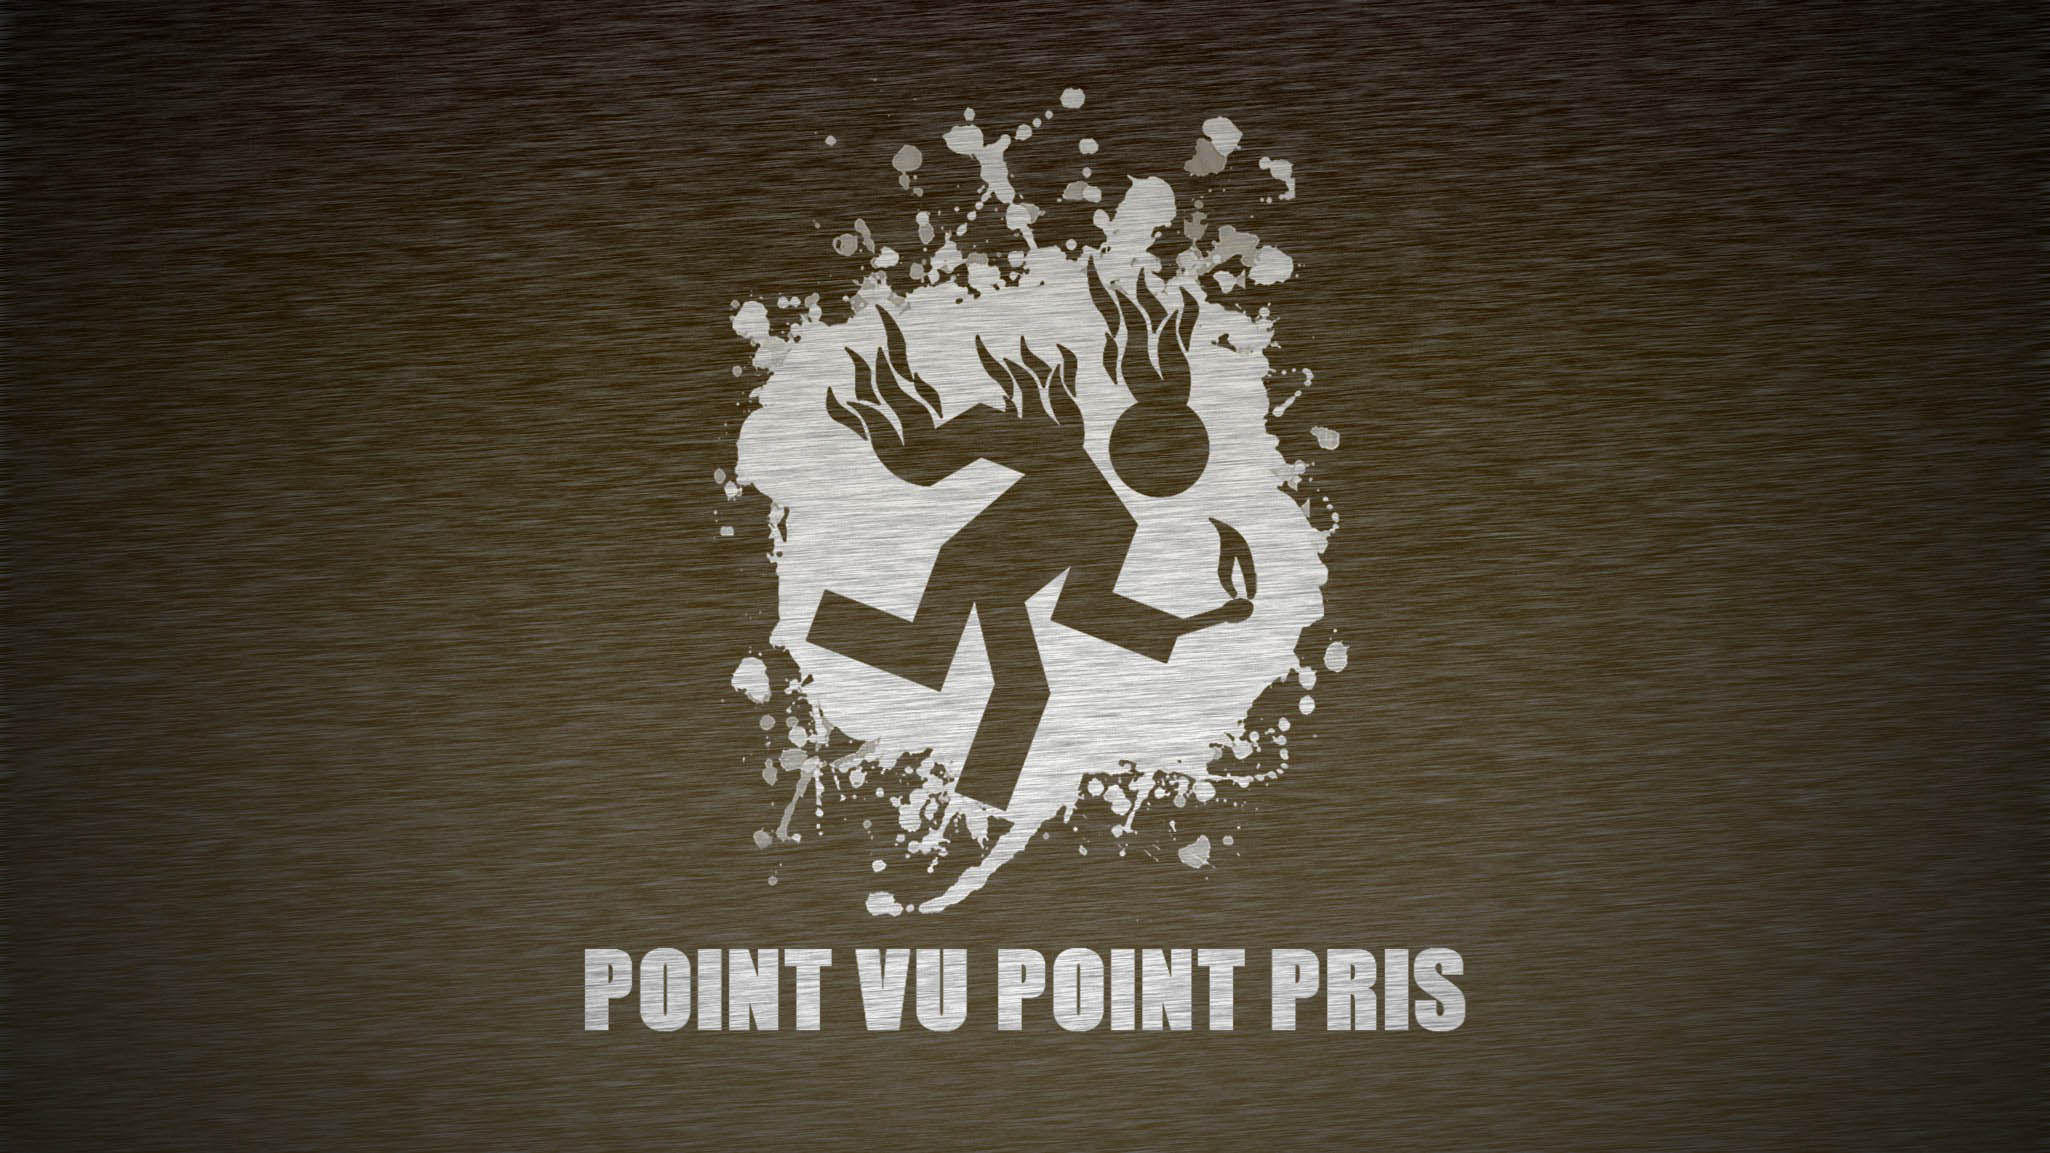 POINT VU POINT PRIS background image